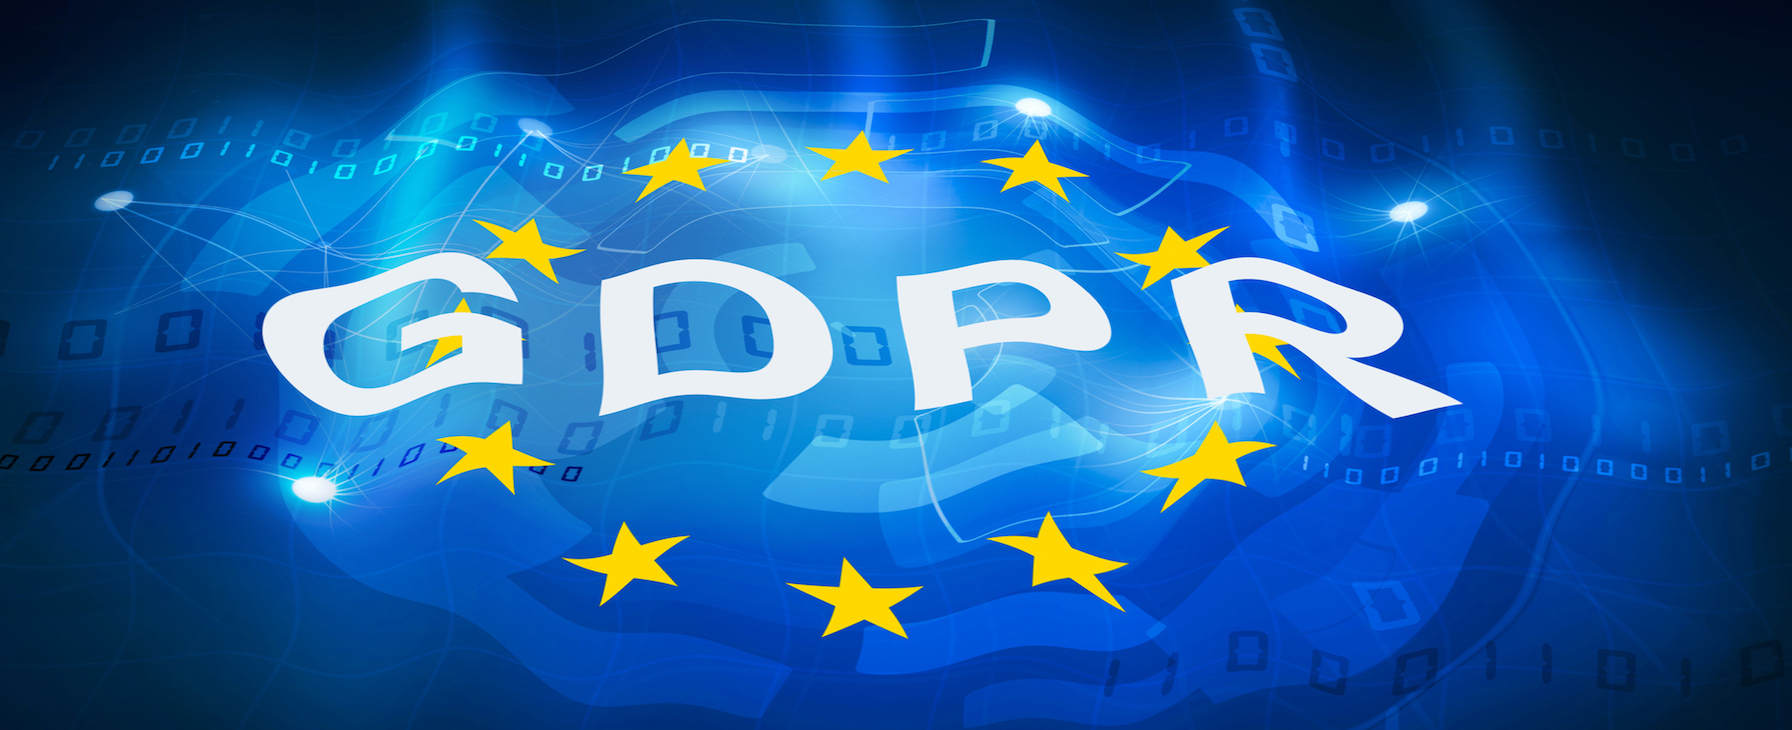 GDPR general data protection regulation.